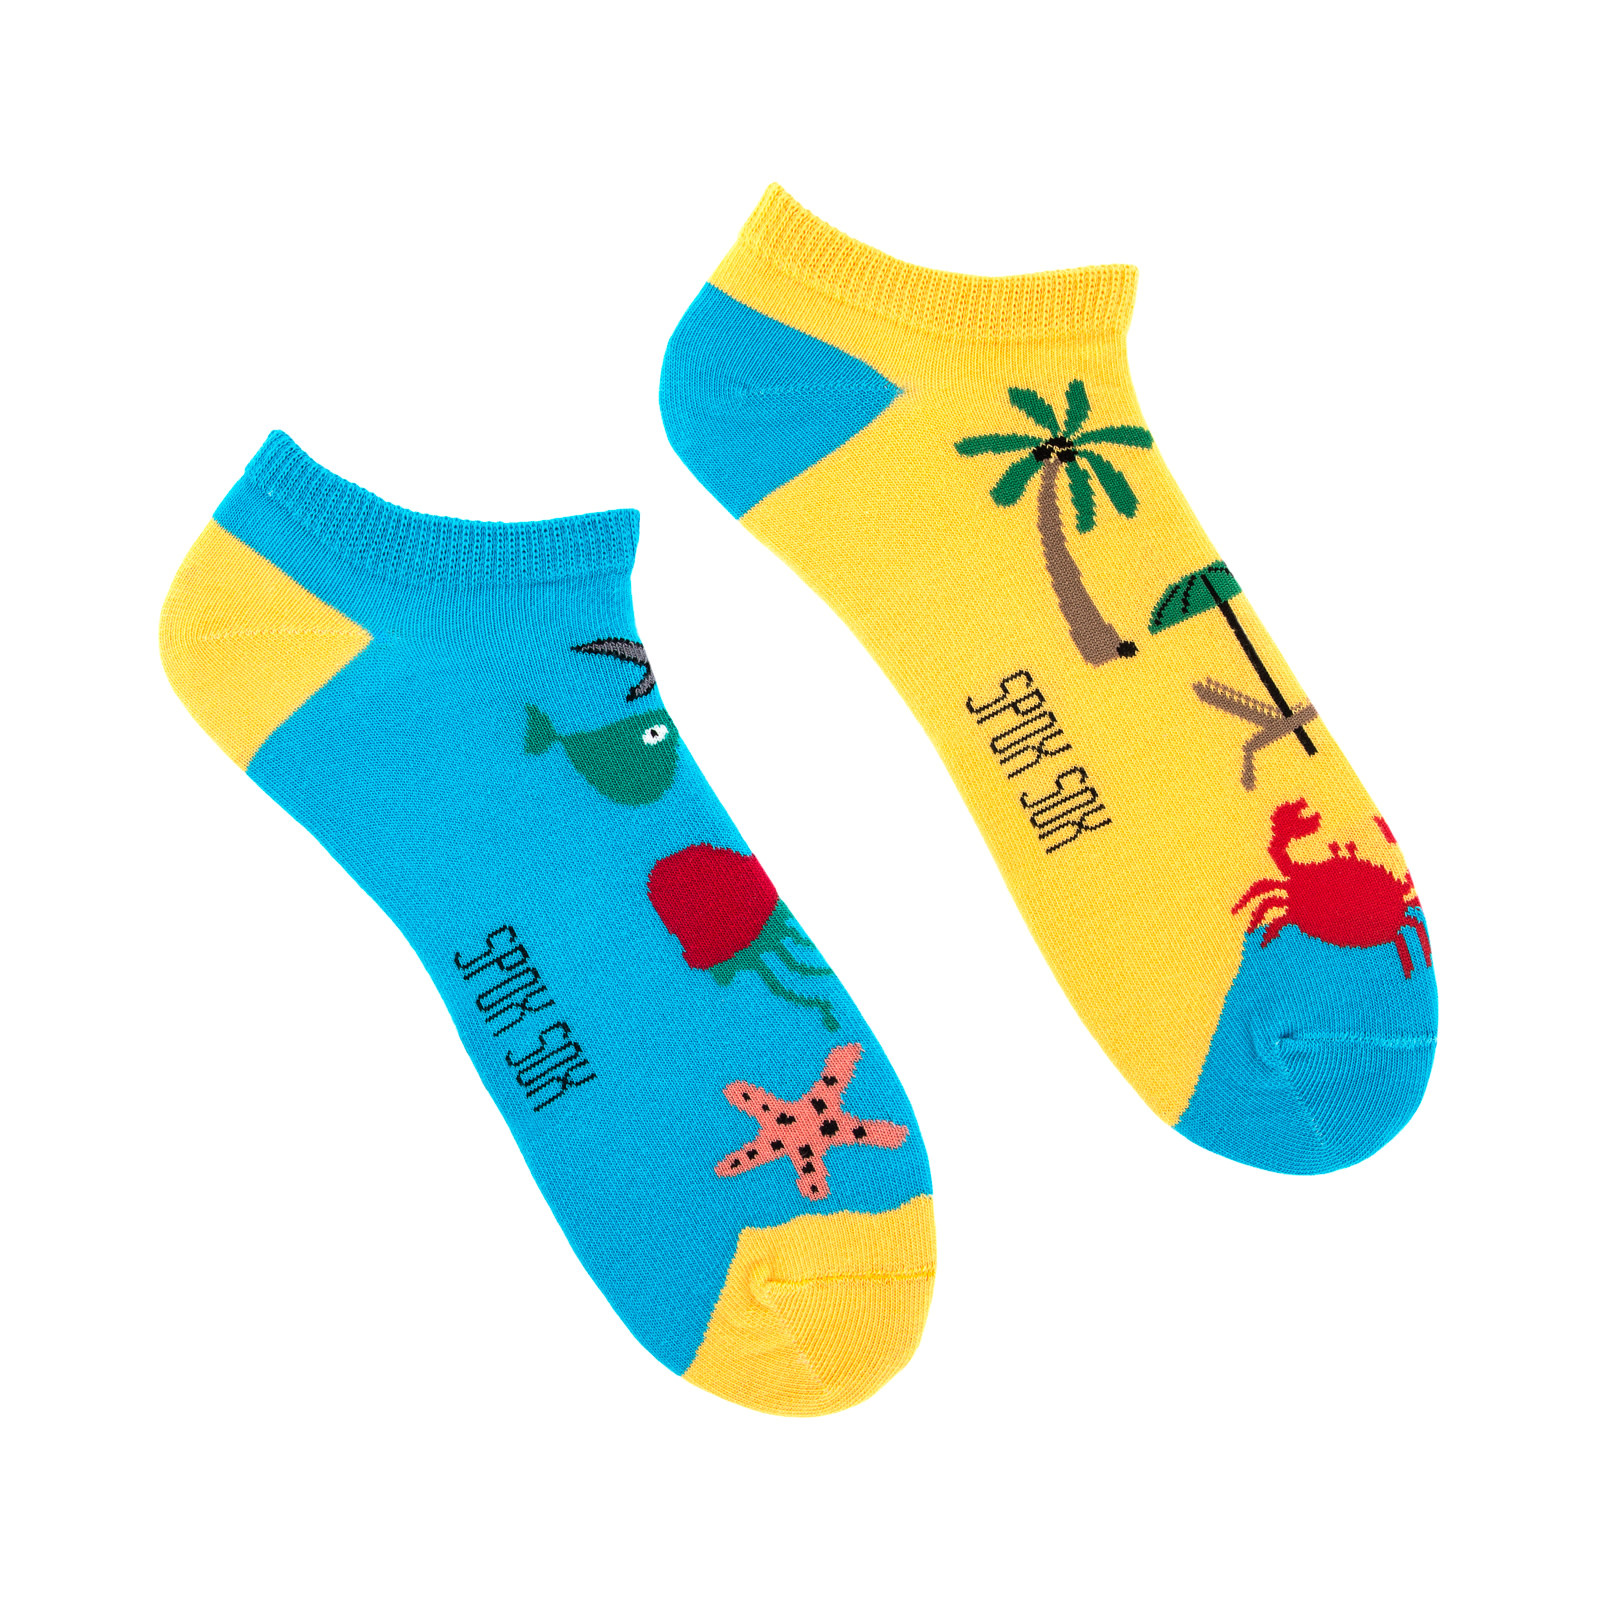 King Stone Socks Ankle Beach